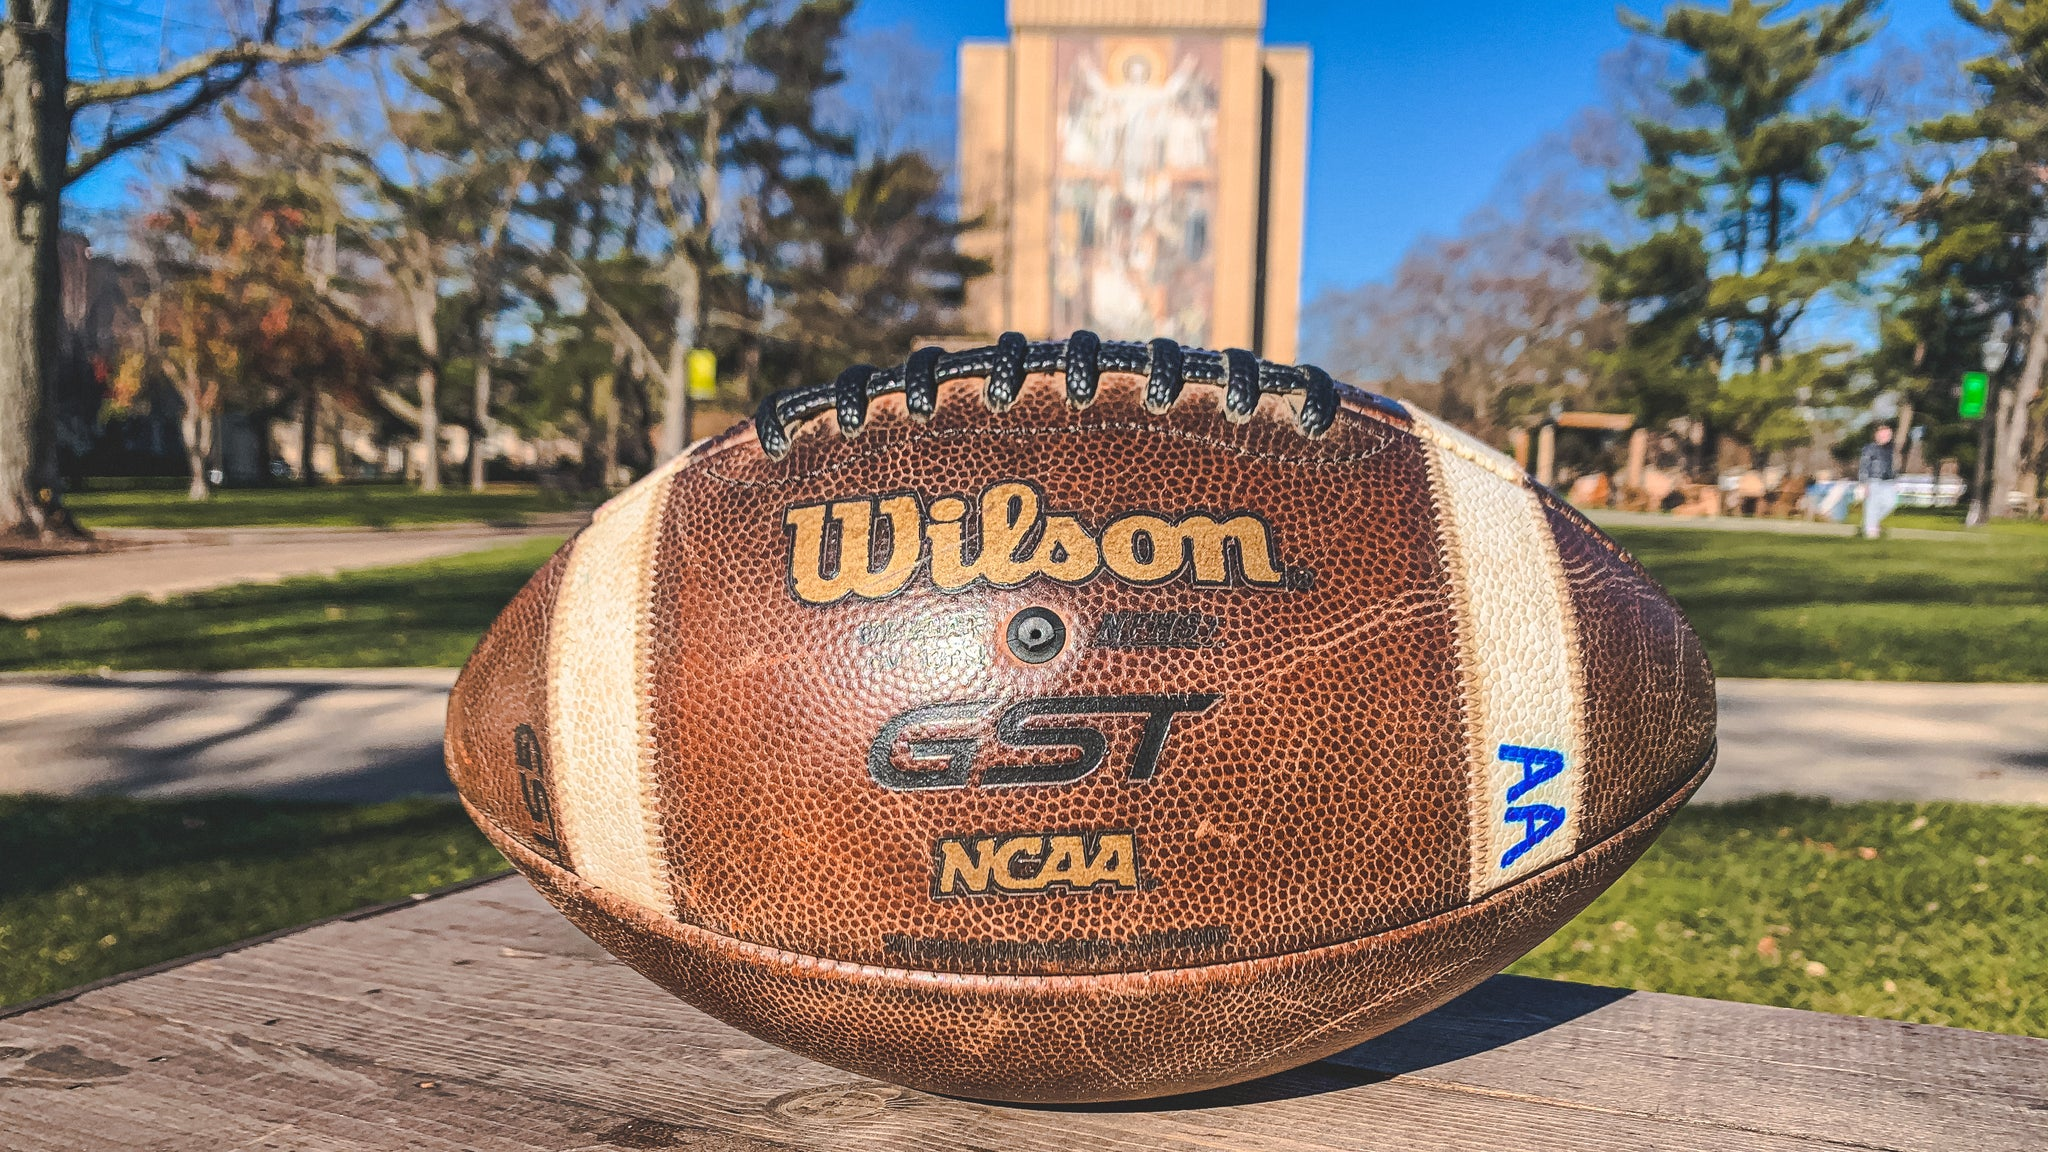 Official Notre Dame vs. Clemson Game Ball